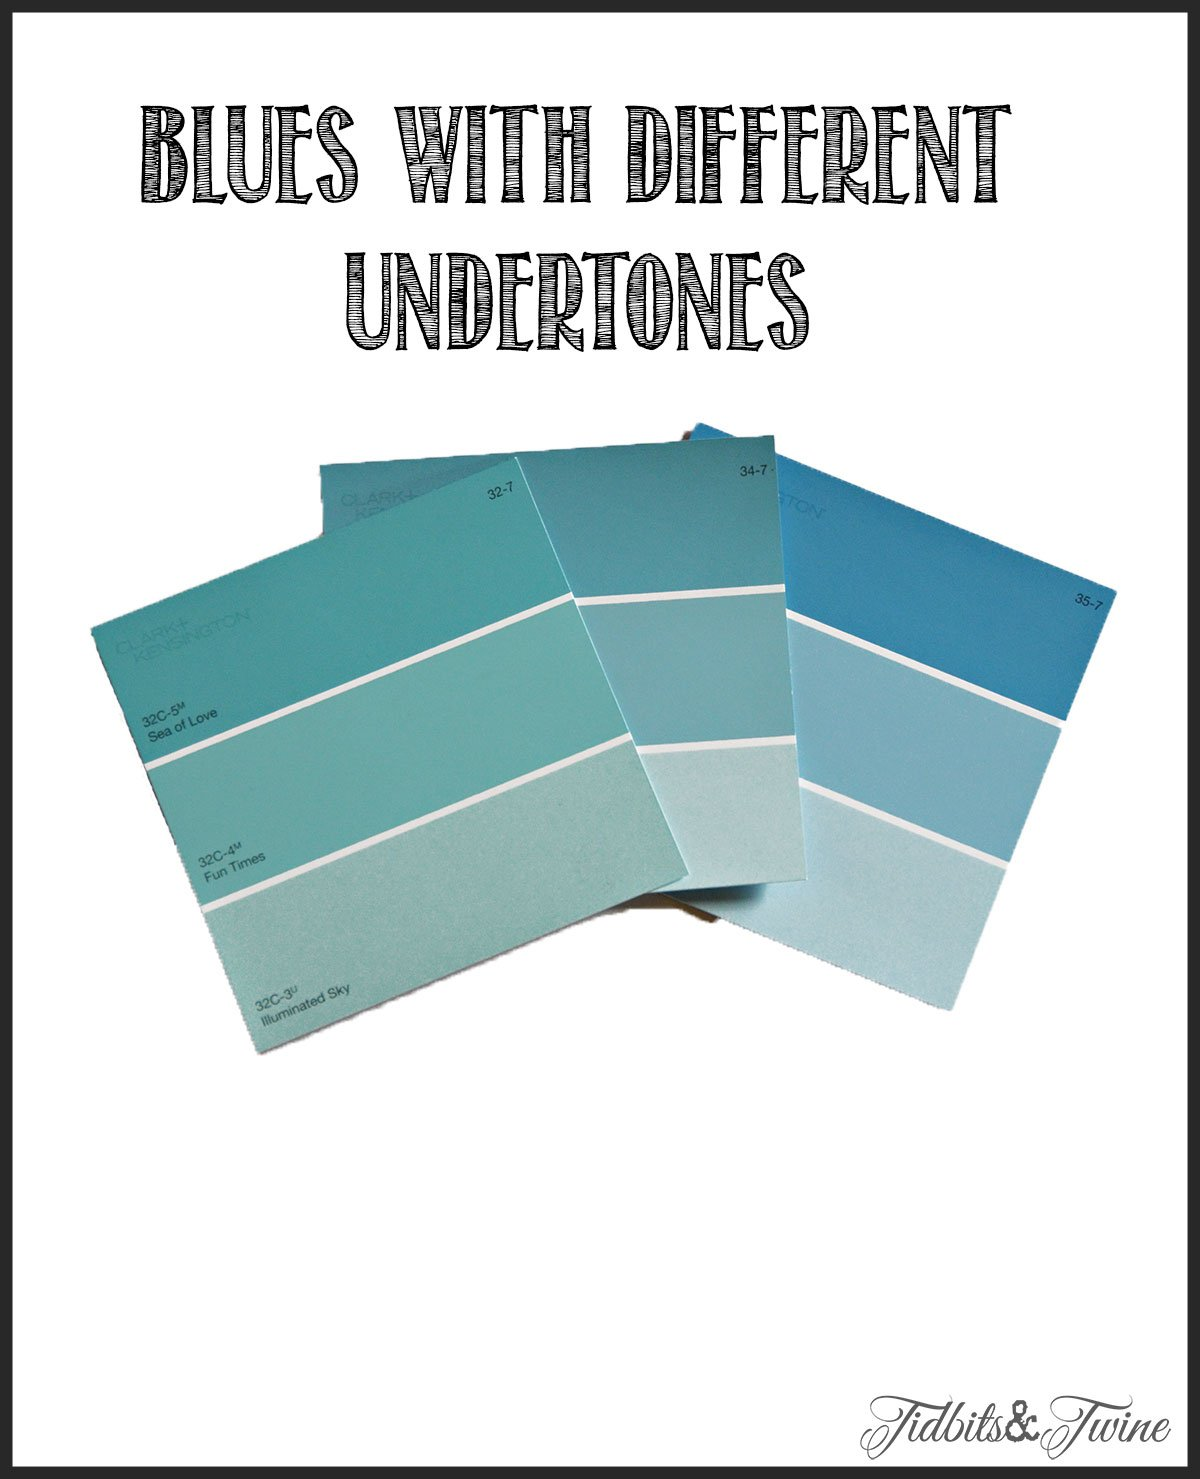 TIDBITS&TWINE-Identifying-the-Undertone-of-a-Color-4